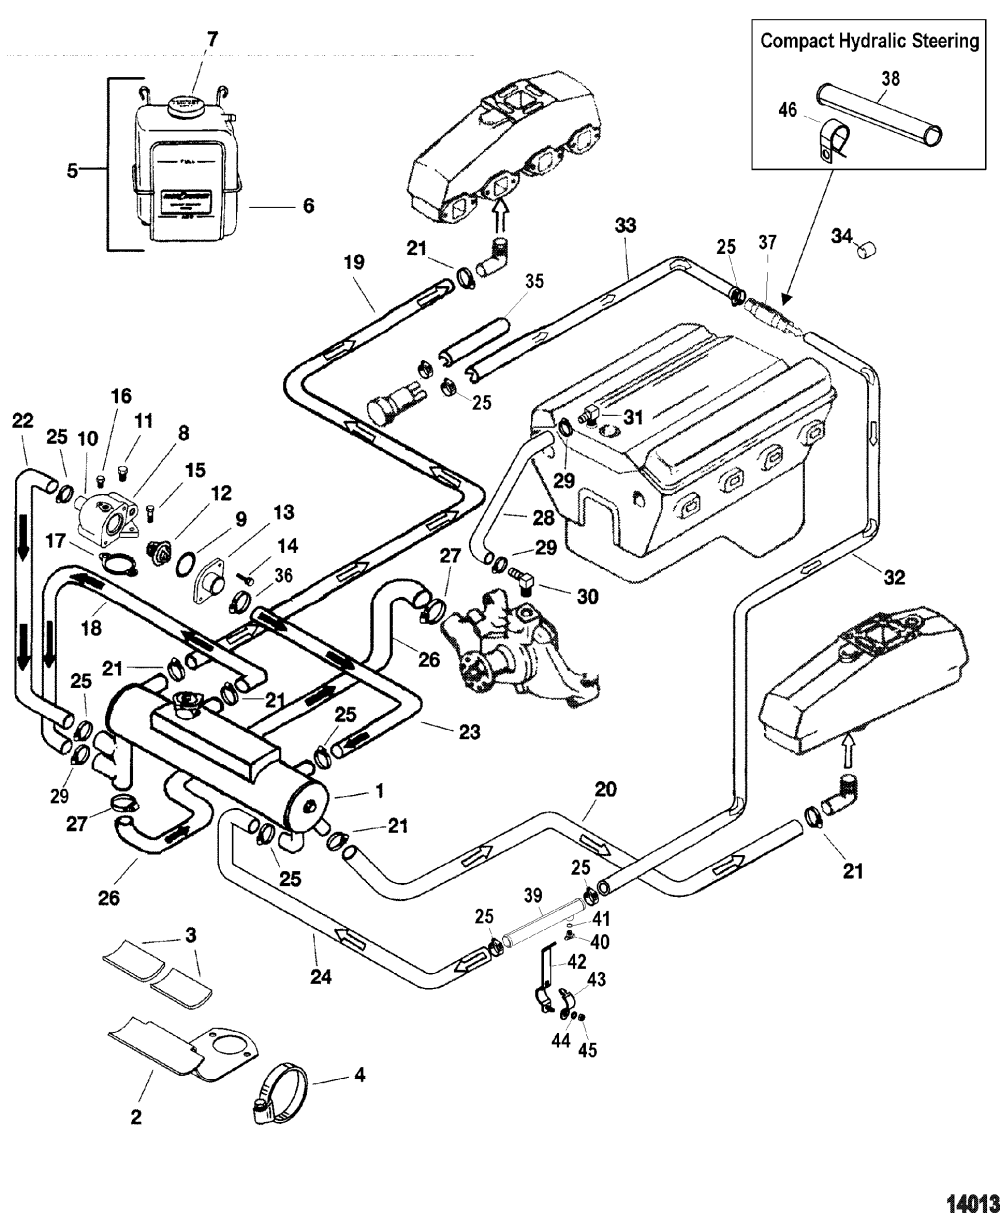 medium resolution of closed cooling system for mercruiser 5 0l 5 7l alpha bravo 1971 monte carlo engine diagram